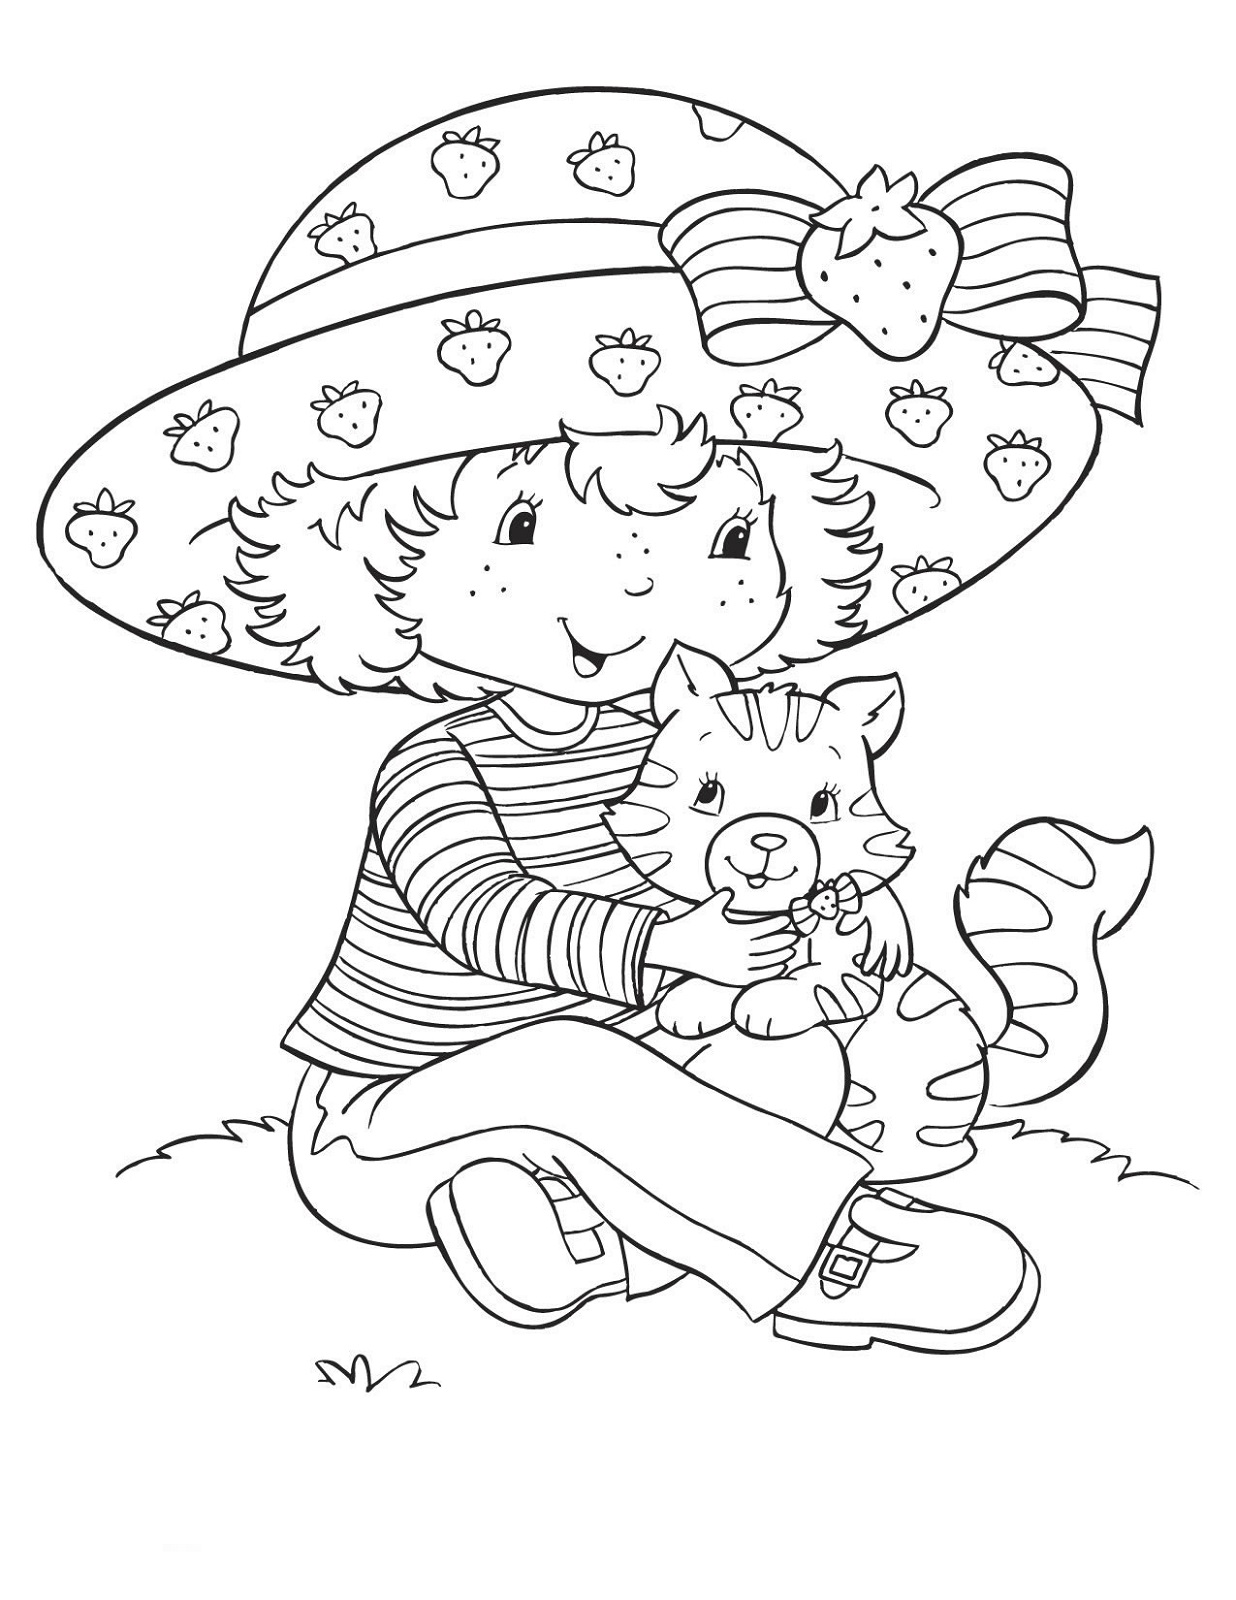 1236x1600 Strawberry Shortcake Coloring Pages For Kids Learning Printable